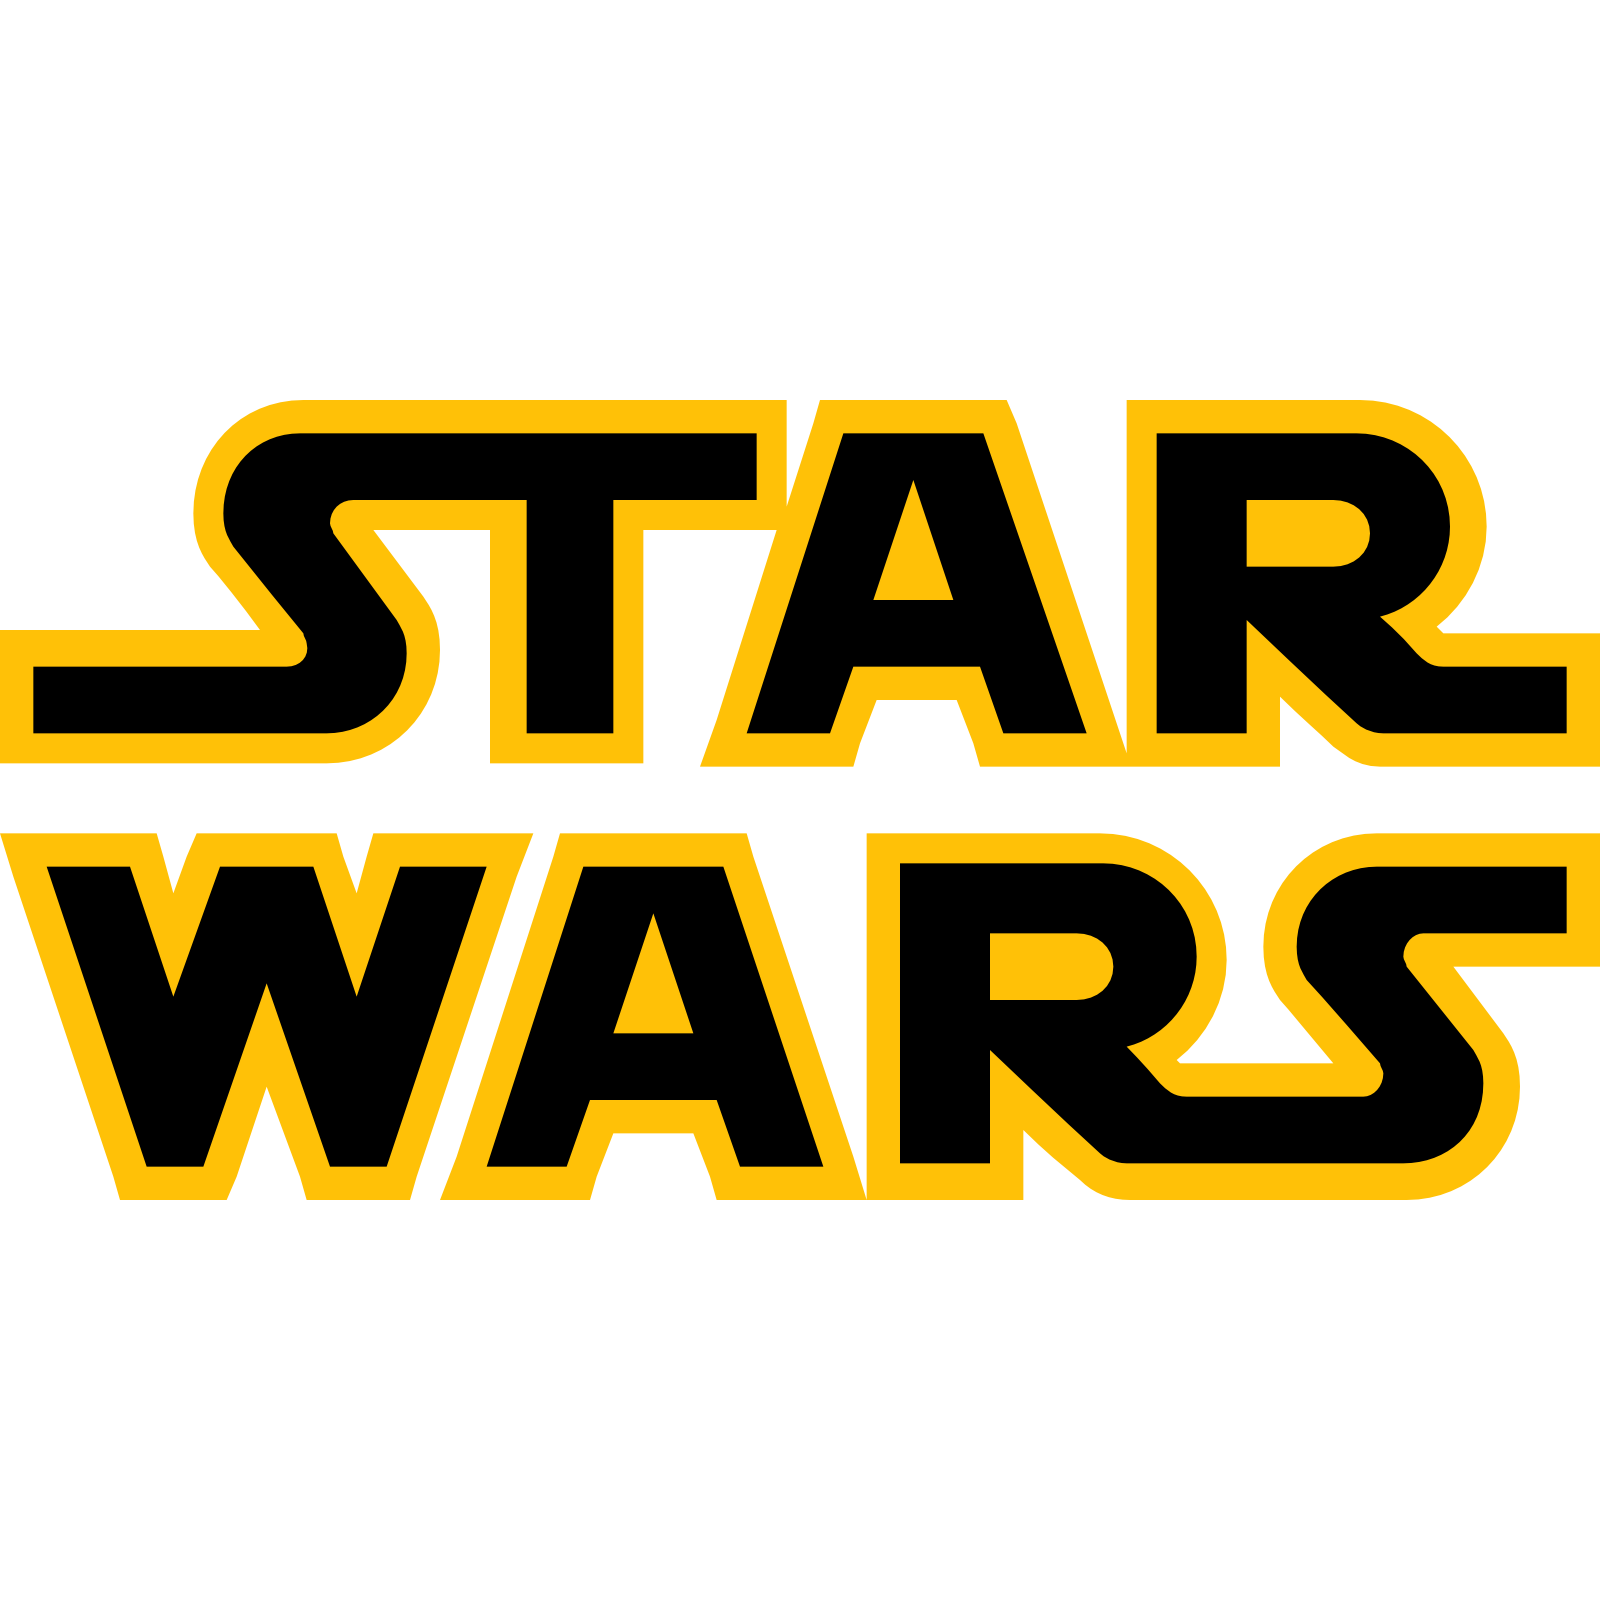 starwars clipart transparent background